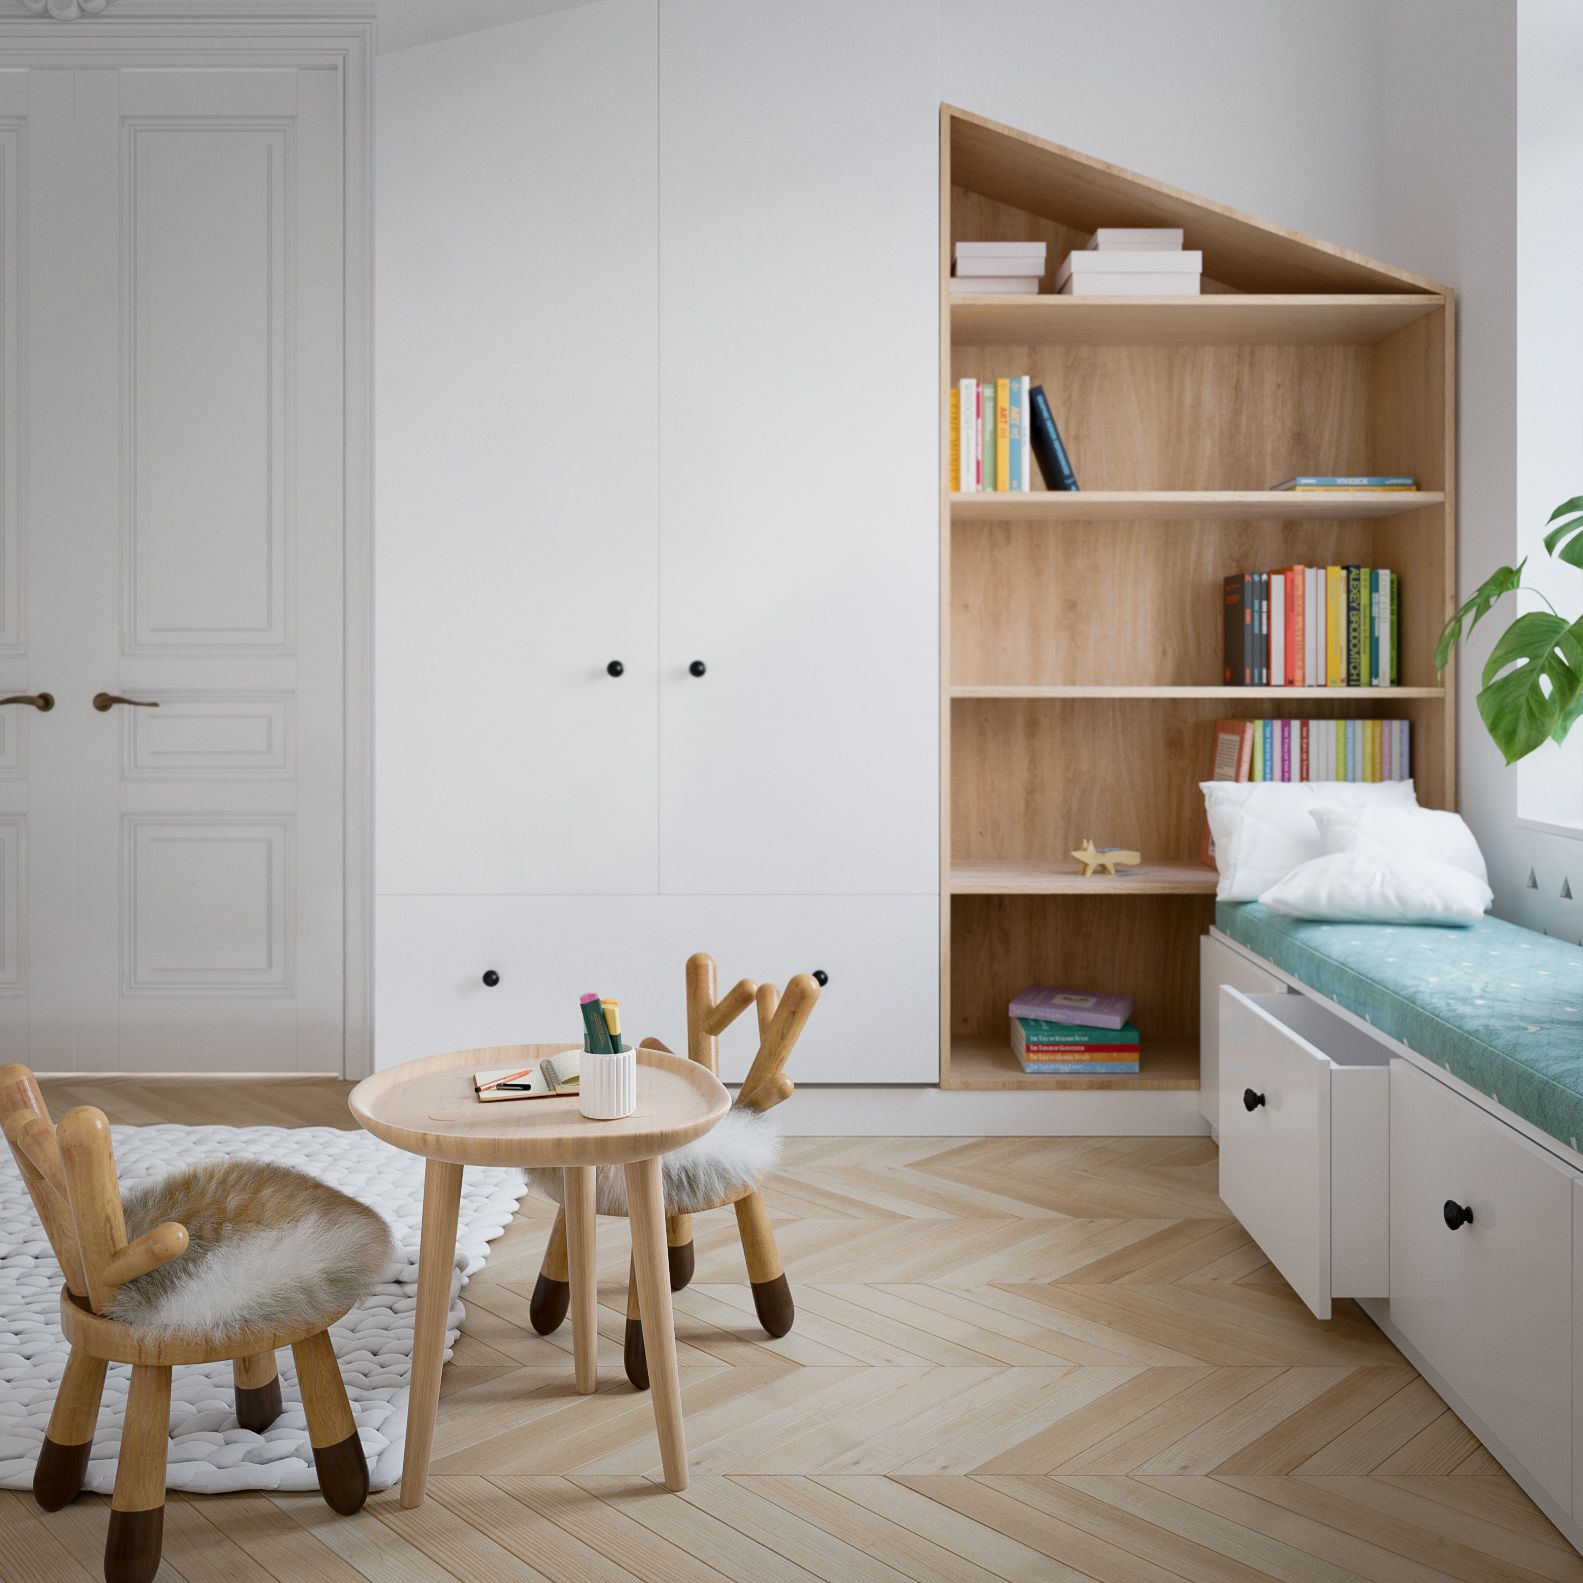 Modern Scandinavian Style Home Design For Young Families 2 Examples Furniture Bedroom Furniture Sets Stylish Bedroom Design